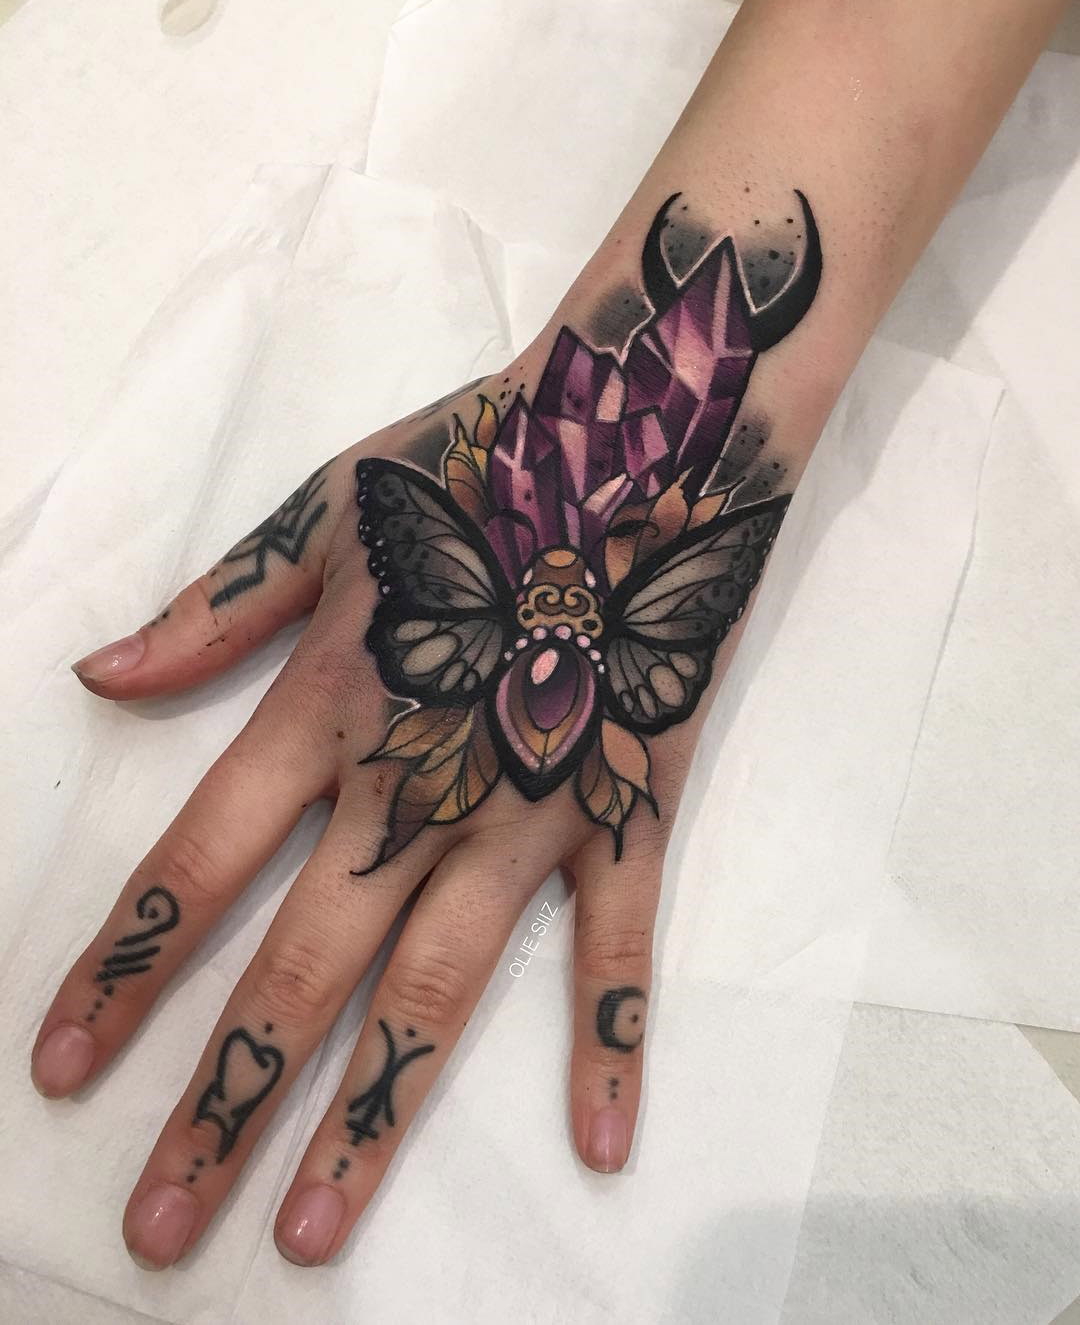 moth crystals girls hand tattoo best tattoo design ideas. Black Bedroom Furniture Sets. Home Design Ideas